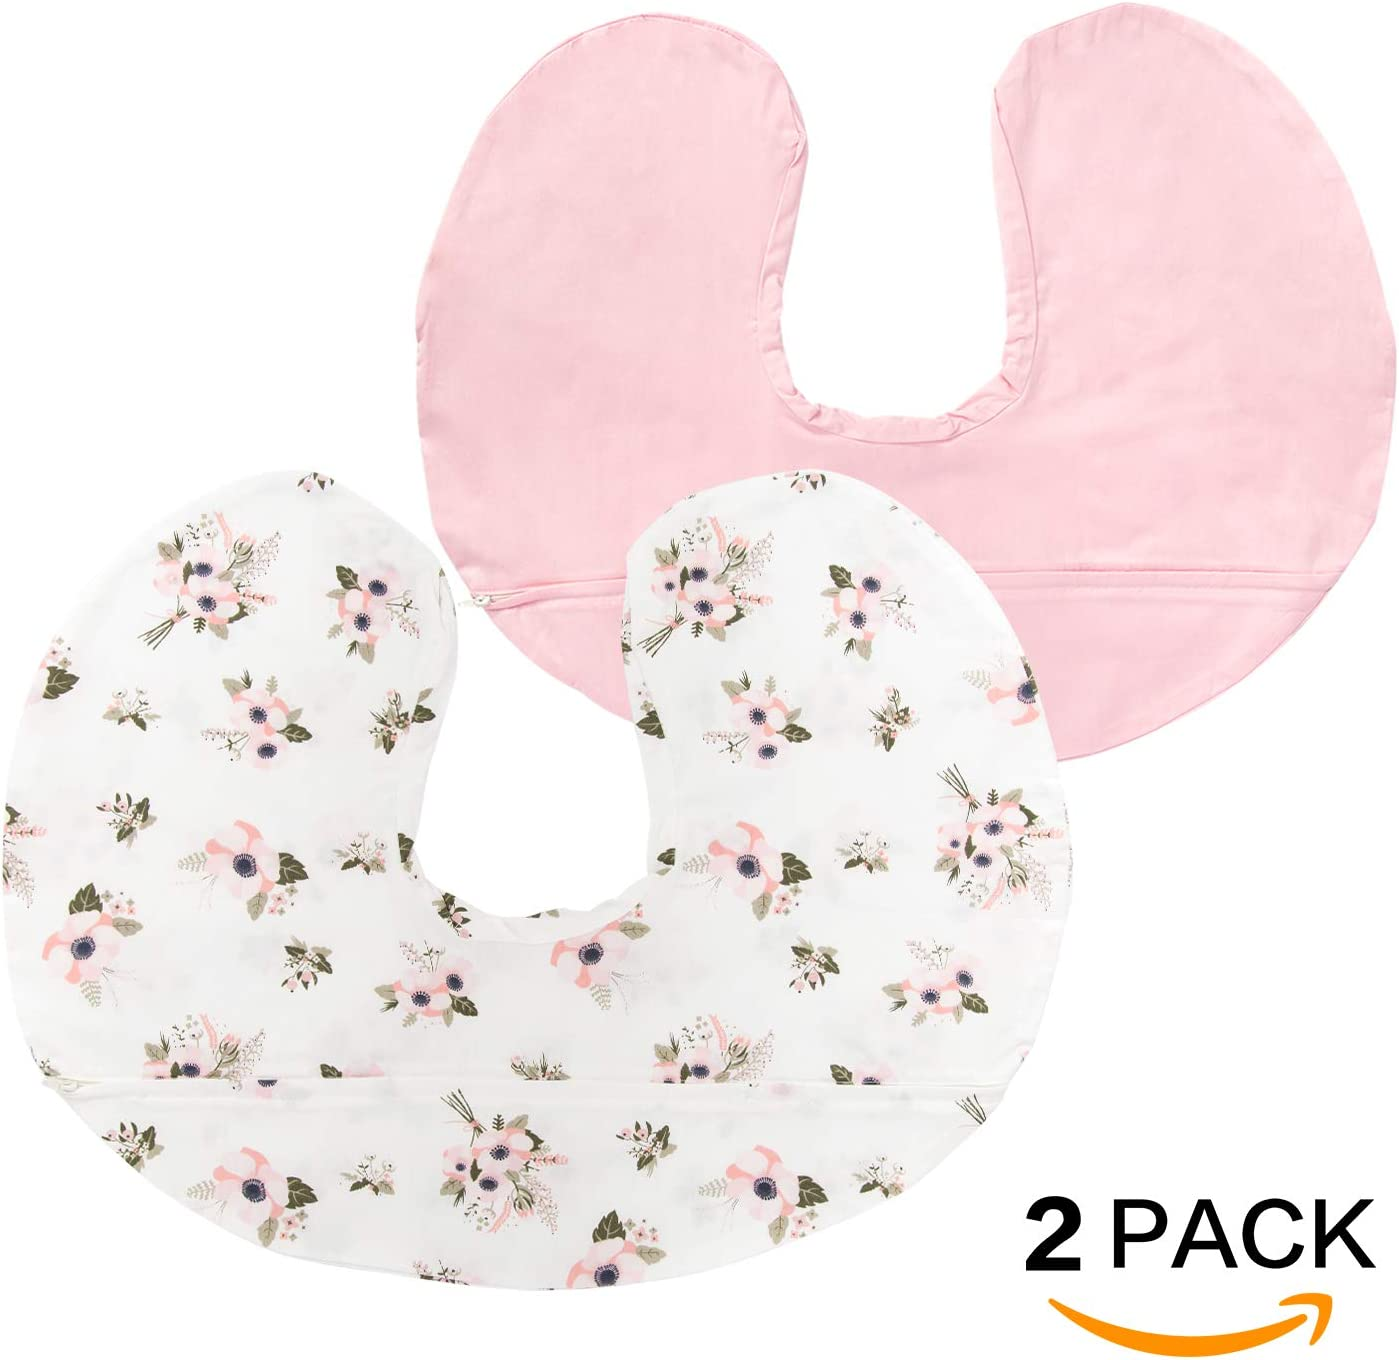 Lt Pink /& Floral TILLYOU Large Zipper Nursing Pillow Cover Luxury Egyptian Cotton Soft Feeding Pillow Slipcovers for Baby Girls Boys Fits Standard Infant Support Pillows Positioners